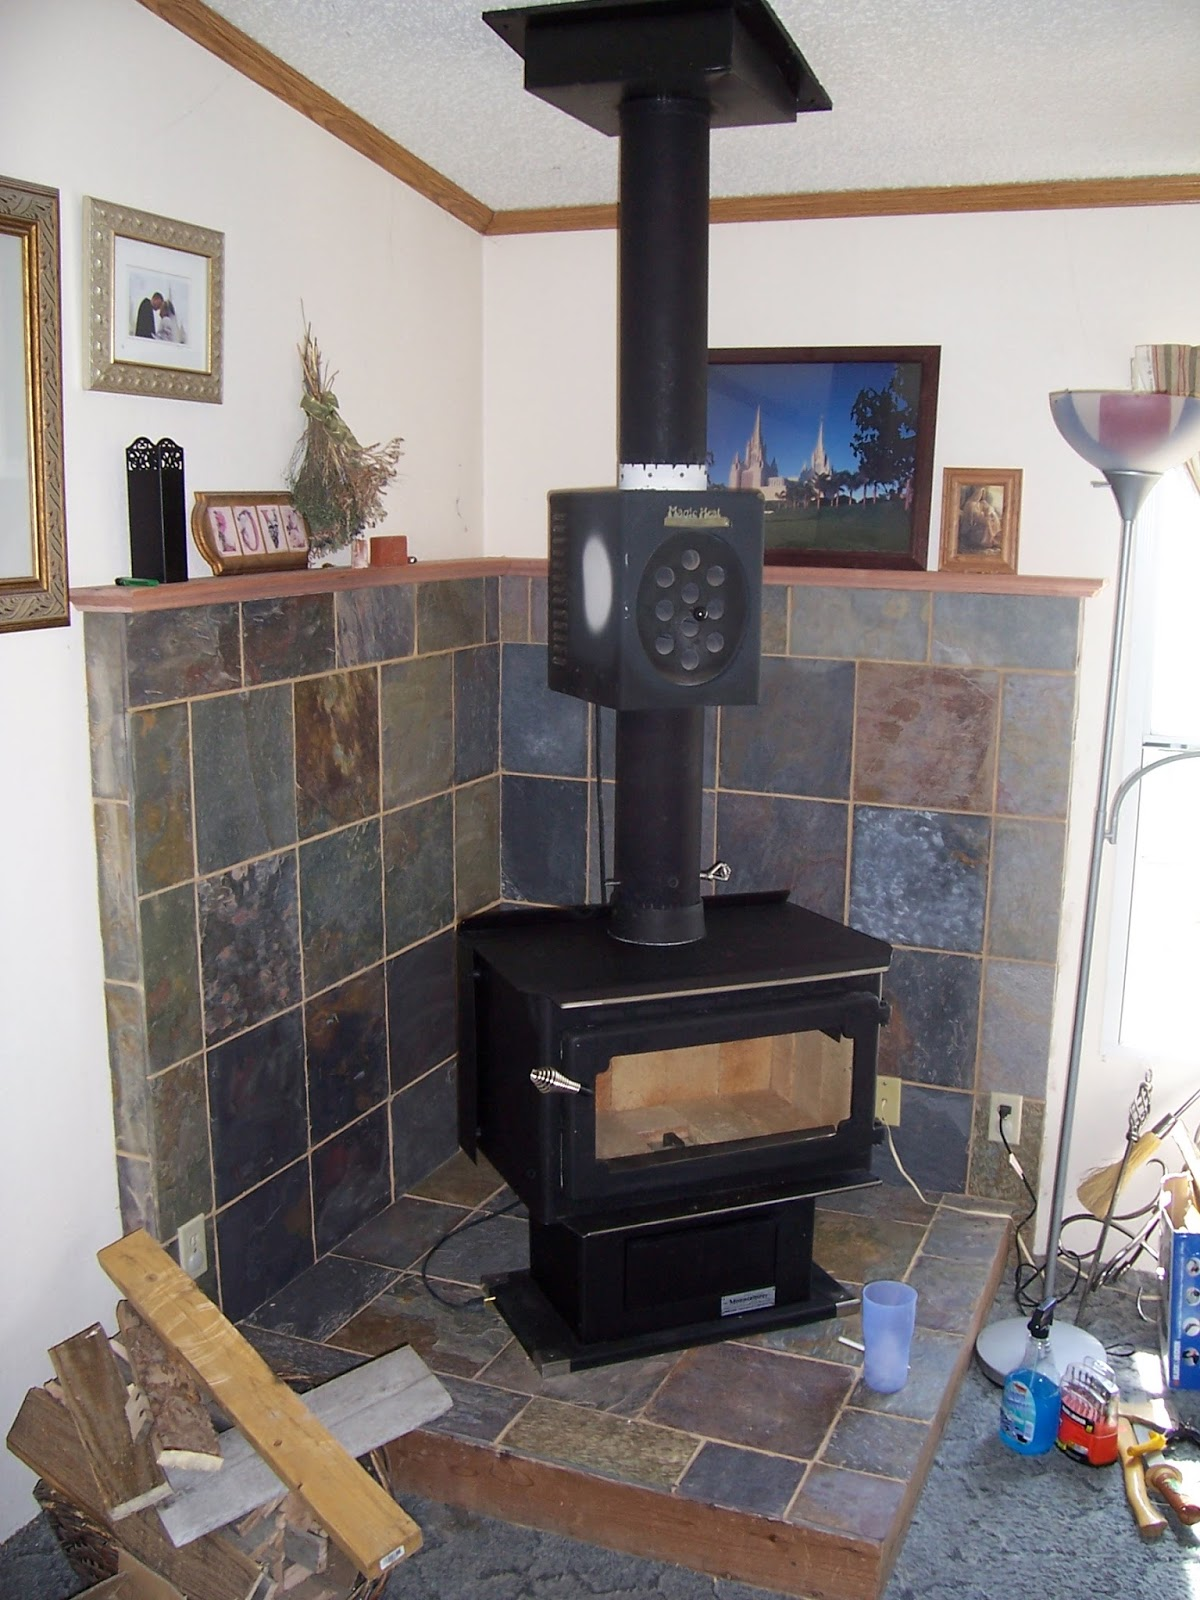 Wood Stove Slate Tile Surround - Li'l Buck's Creations: Wood Stove Slate Tile Surround